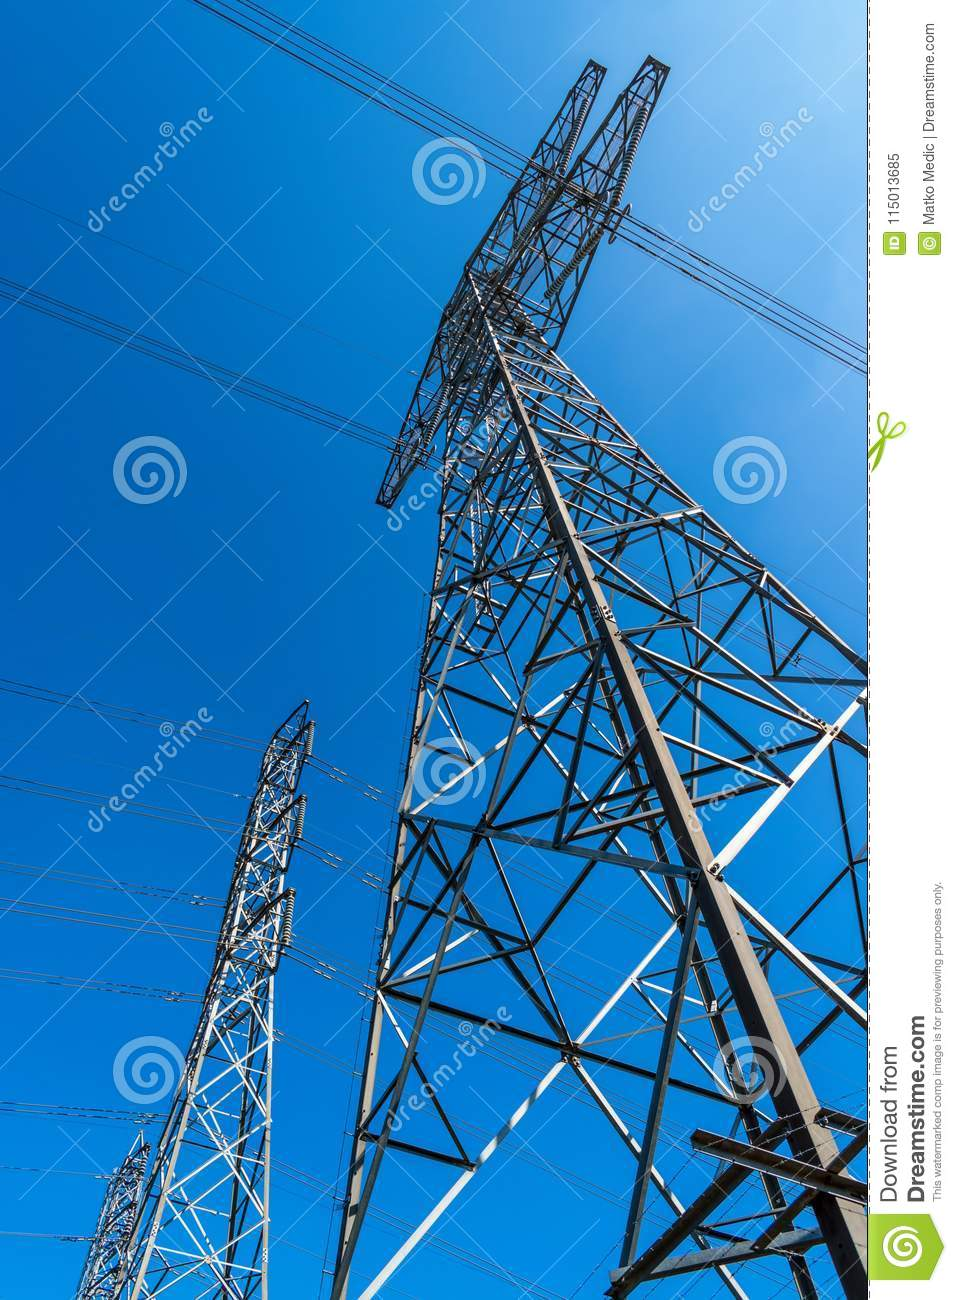 High voltage electrical power lines and clear blue sky